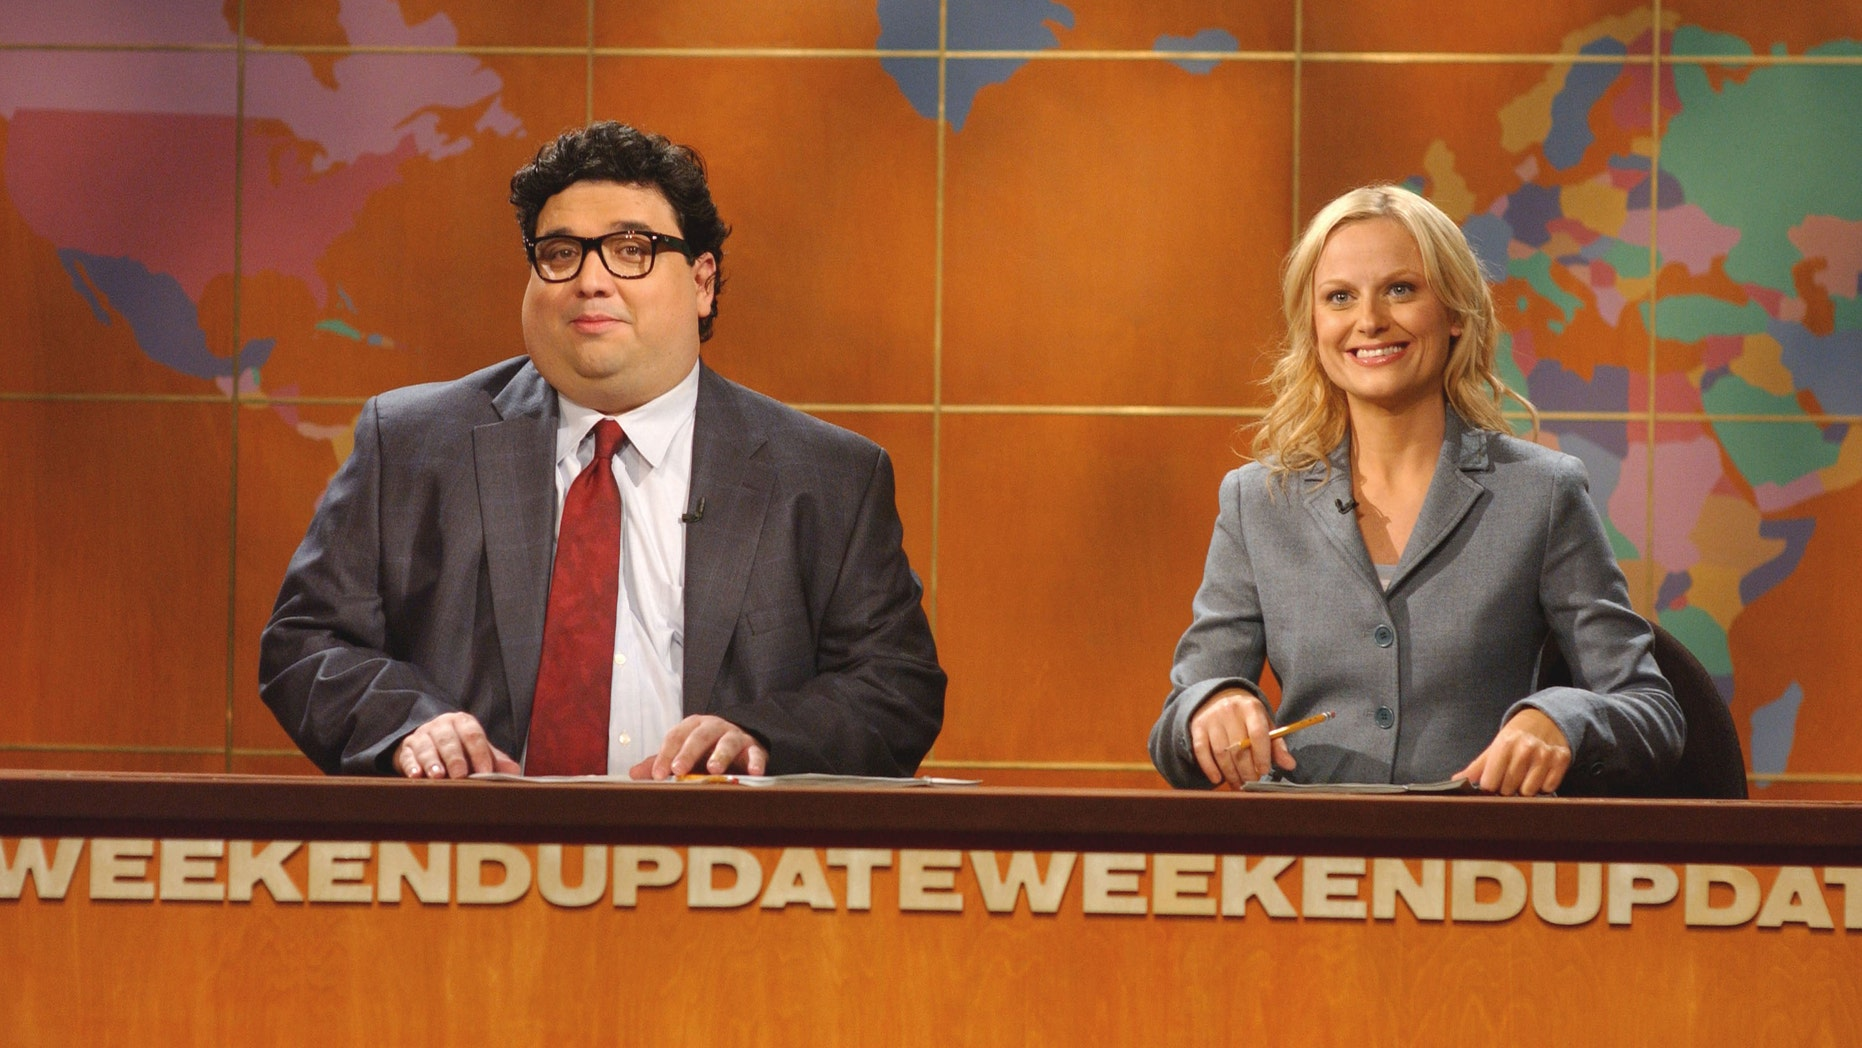 Amy Poehler and Horatio Sanz in an October 2005 file photo.